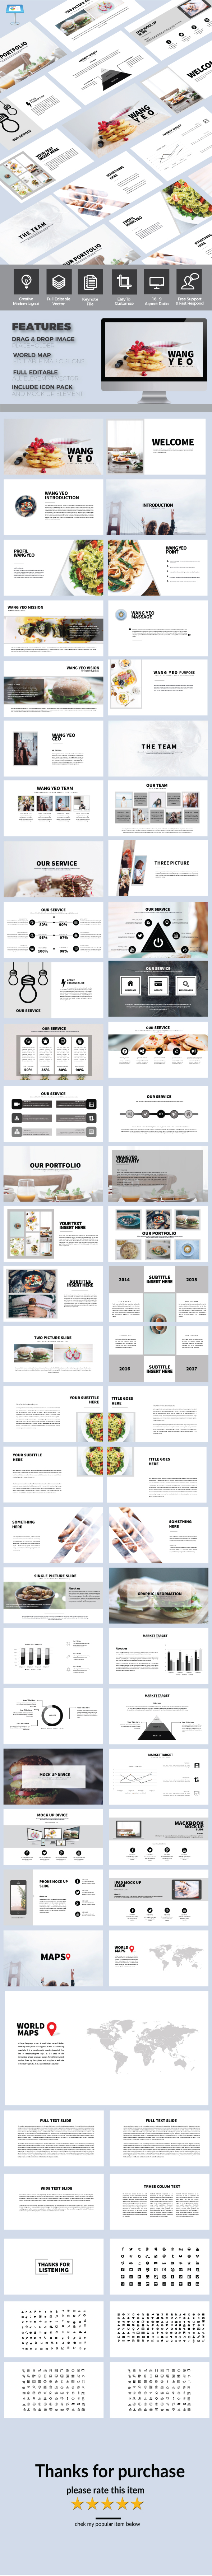 Wang Yeo - Keynote Powerpoint Template - Keynote Templates Presentation Templates